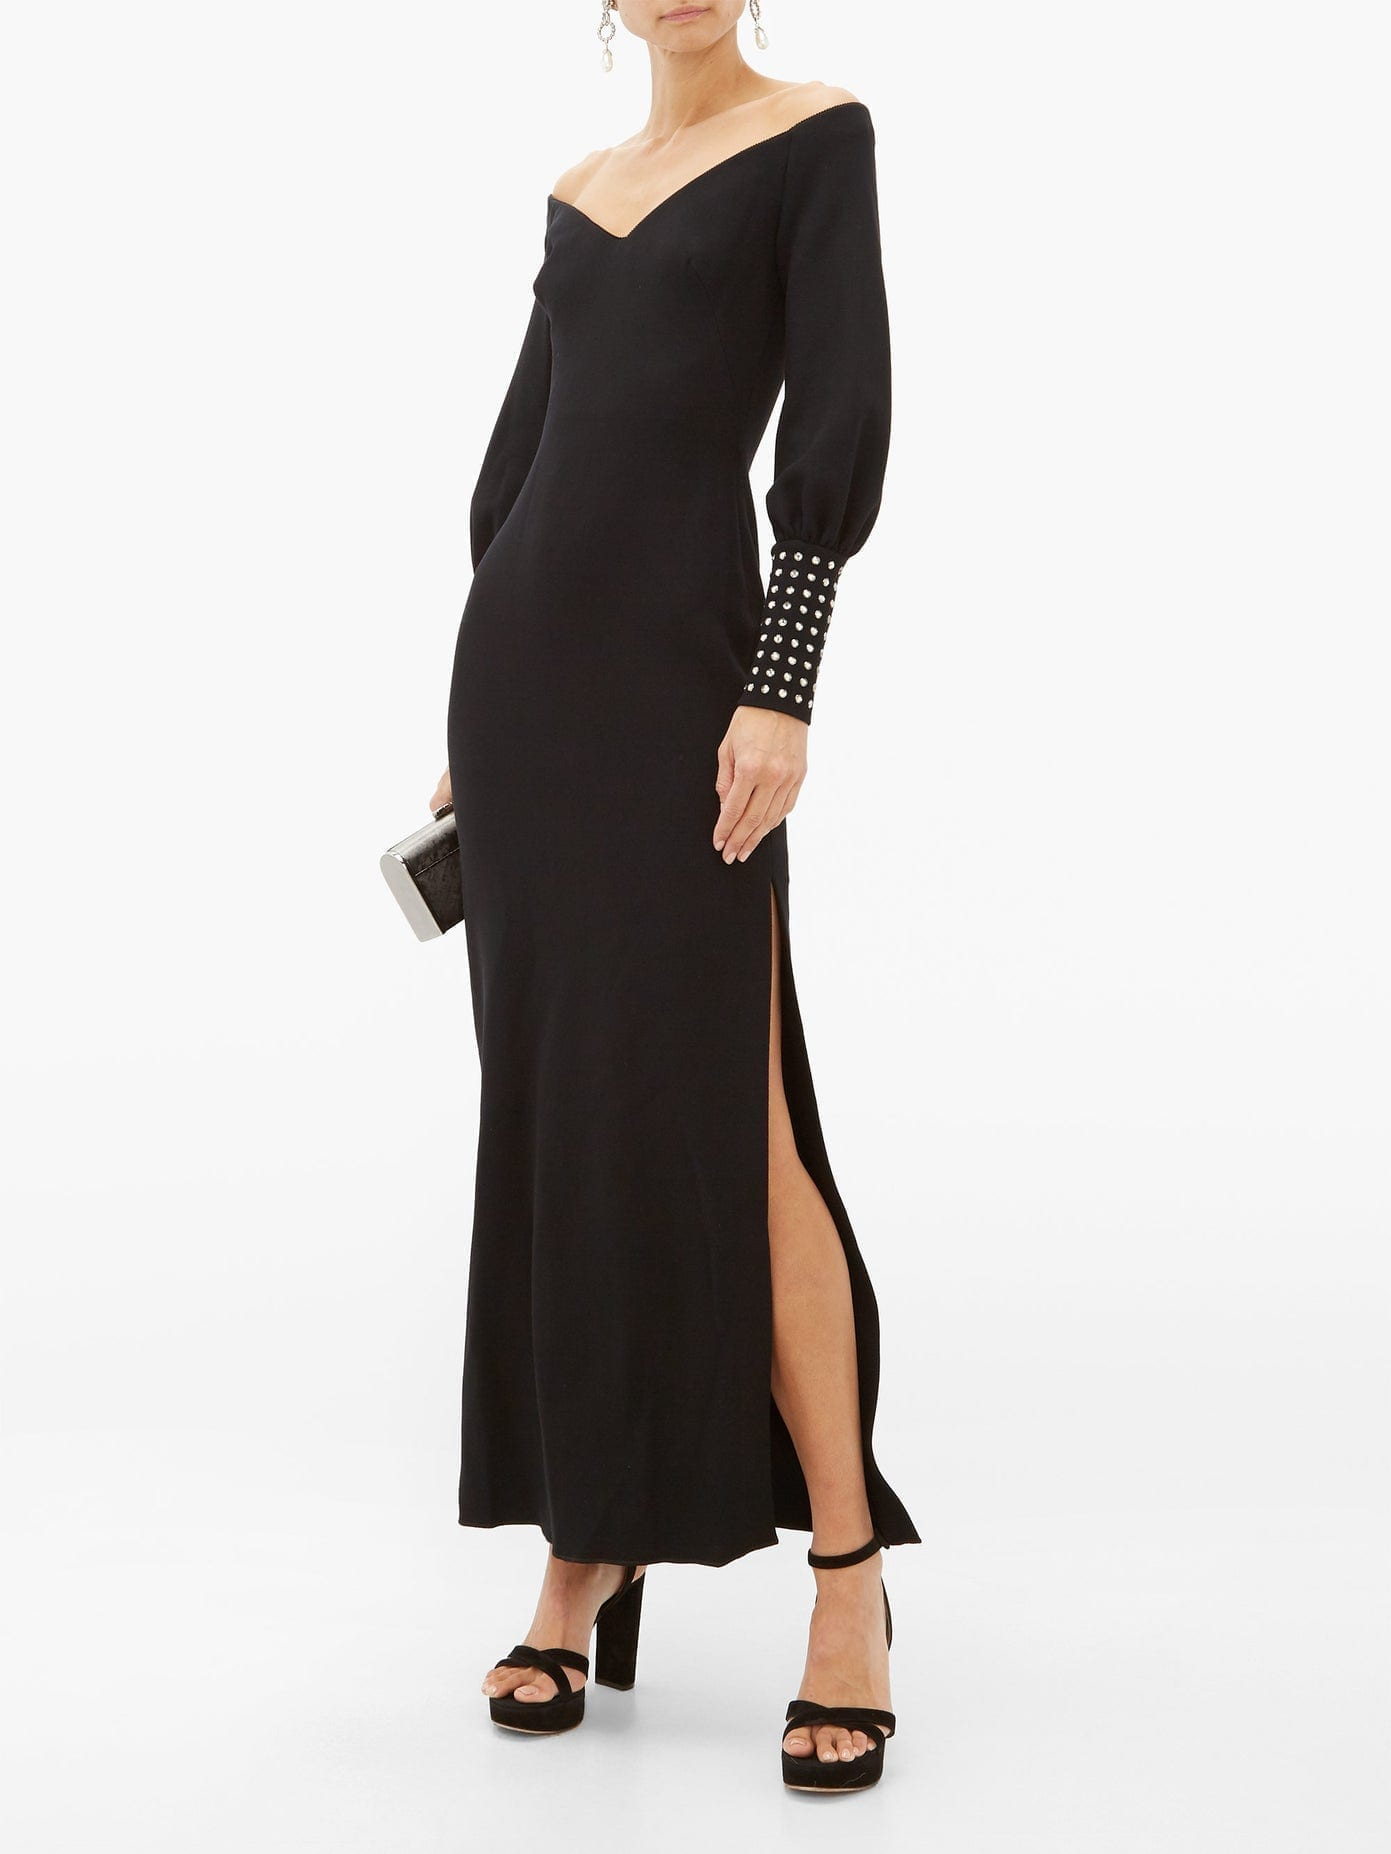 MARIA LUCIA HOHAN Elsie Crystal-cuff Stretch-knit Dress